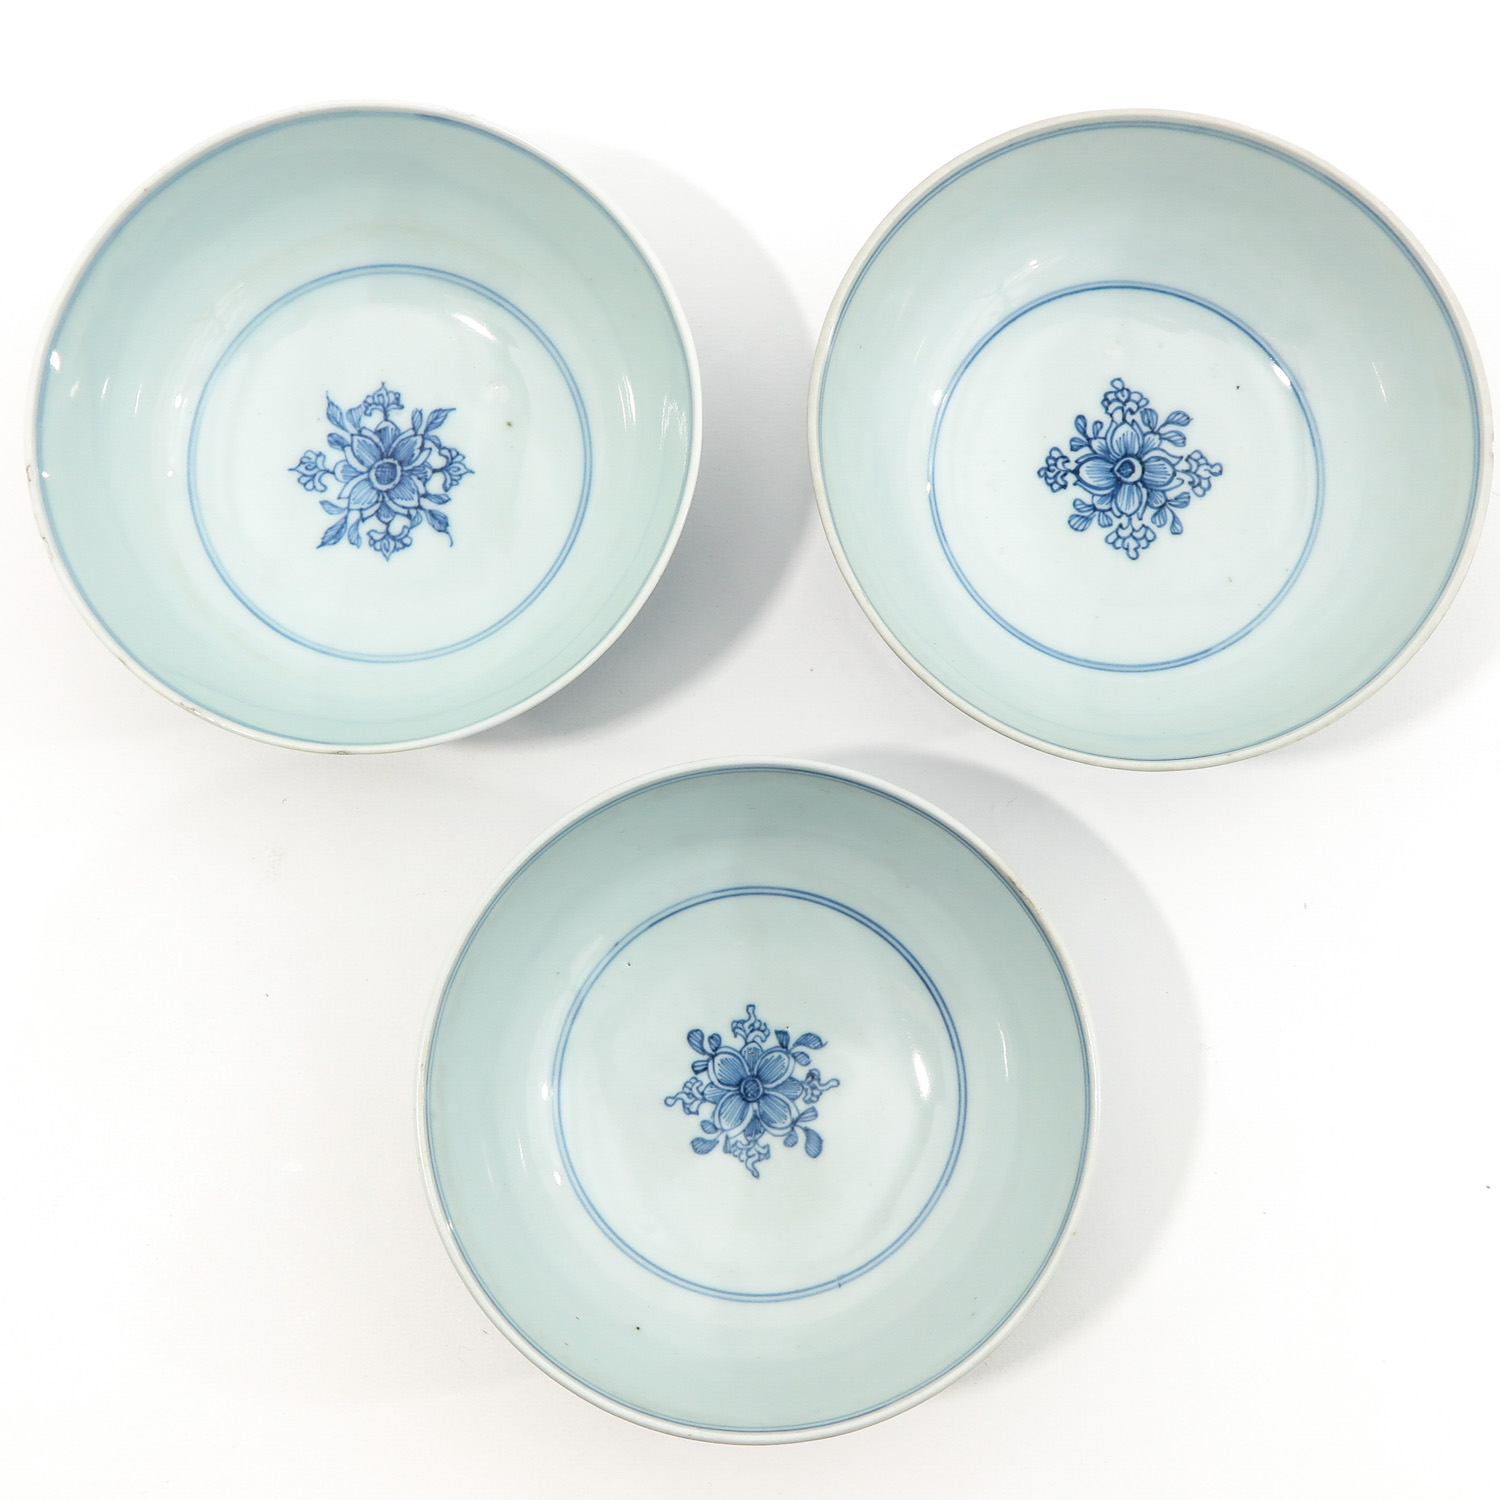 A Series of 3 Blue and White Bowls - Image 5 of 10